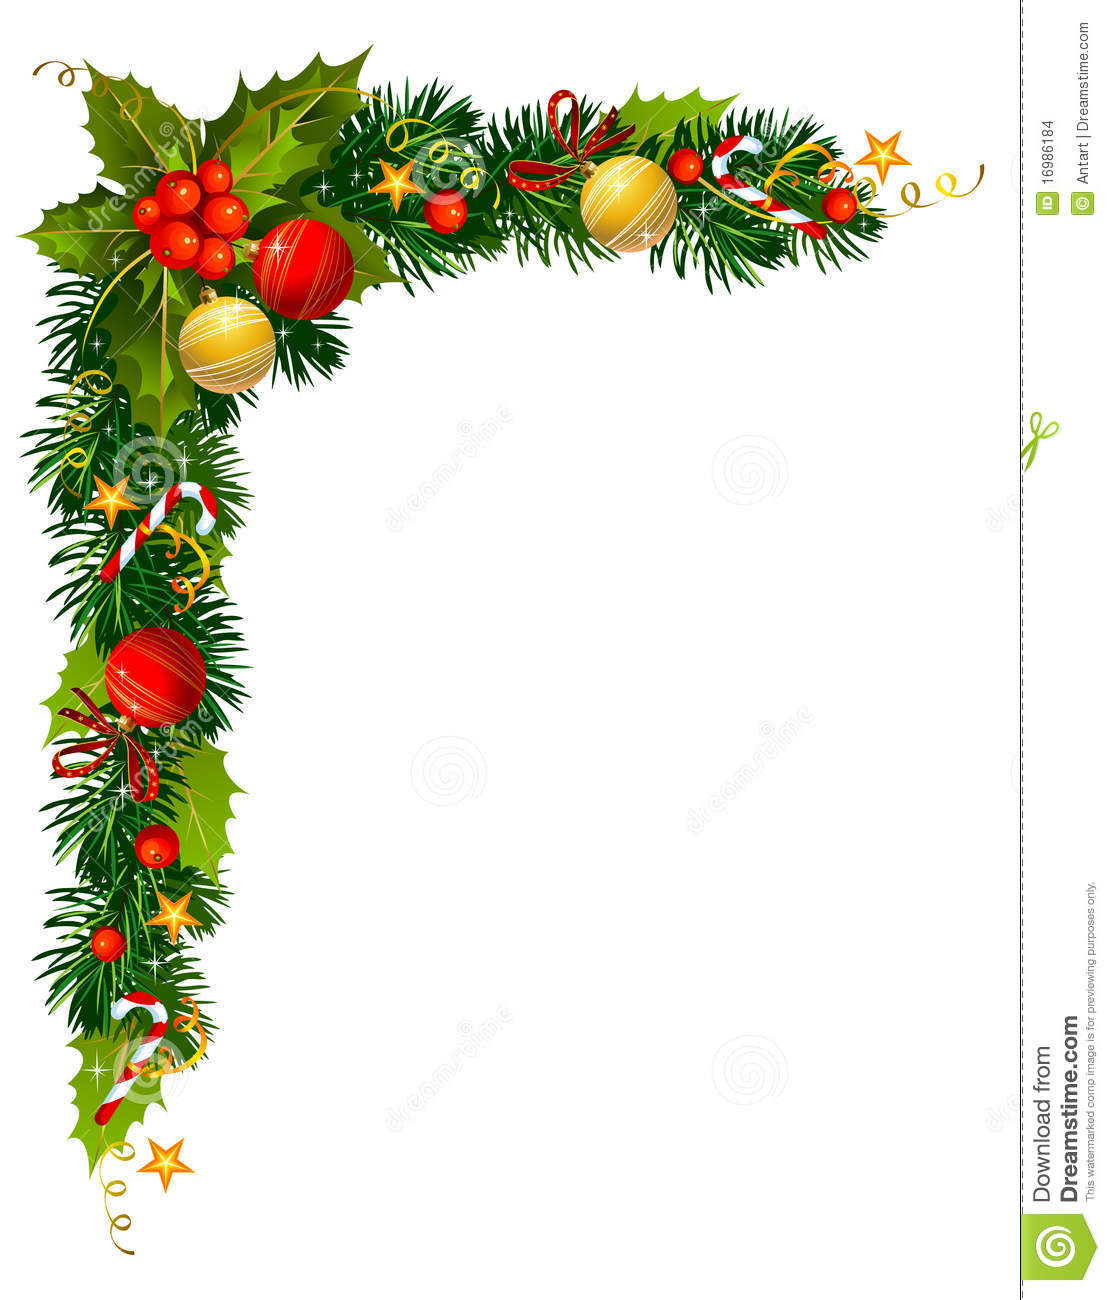 Holley clipart corner border Greenery Christmas Holly collection cliparts